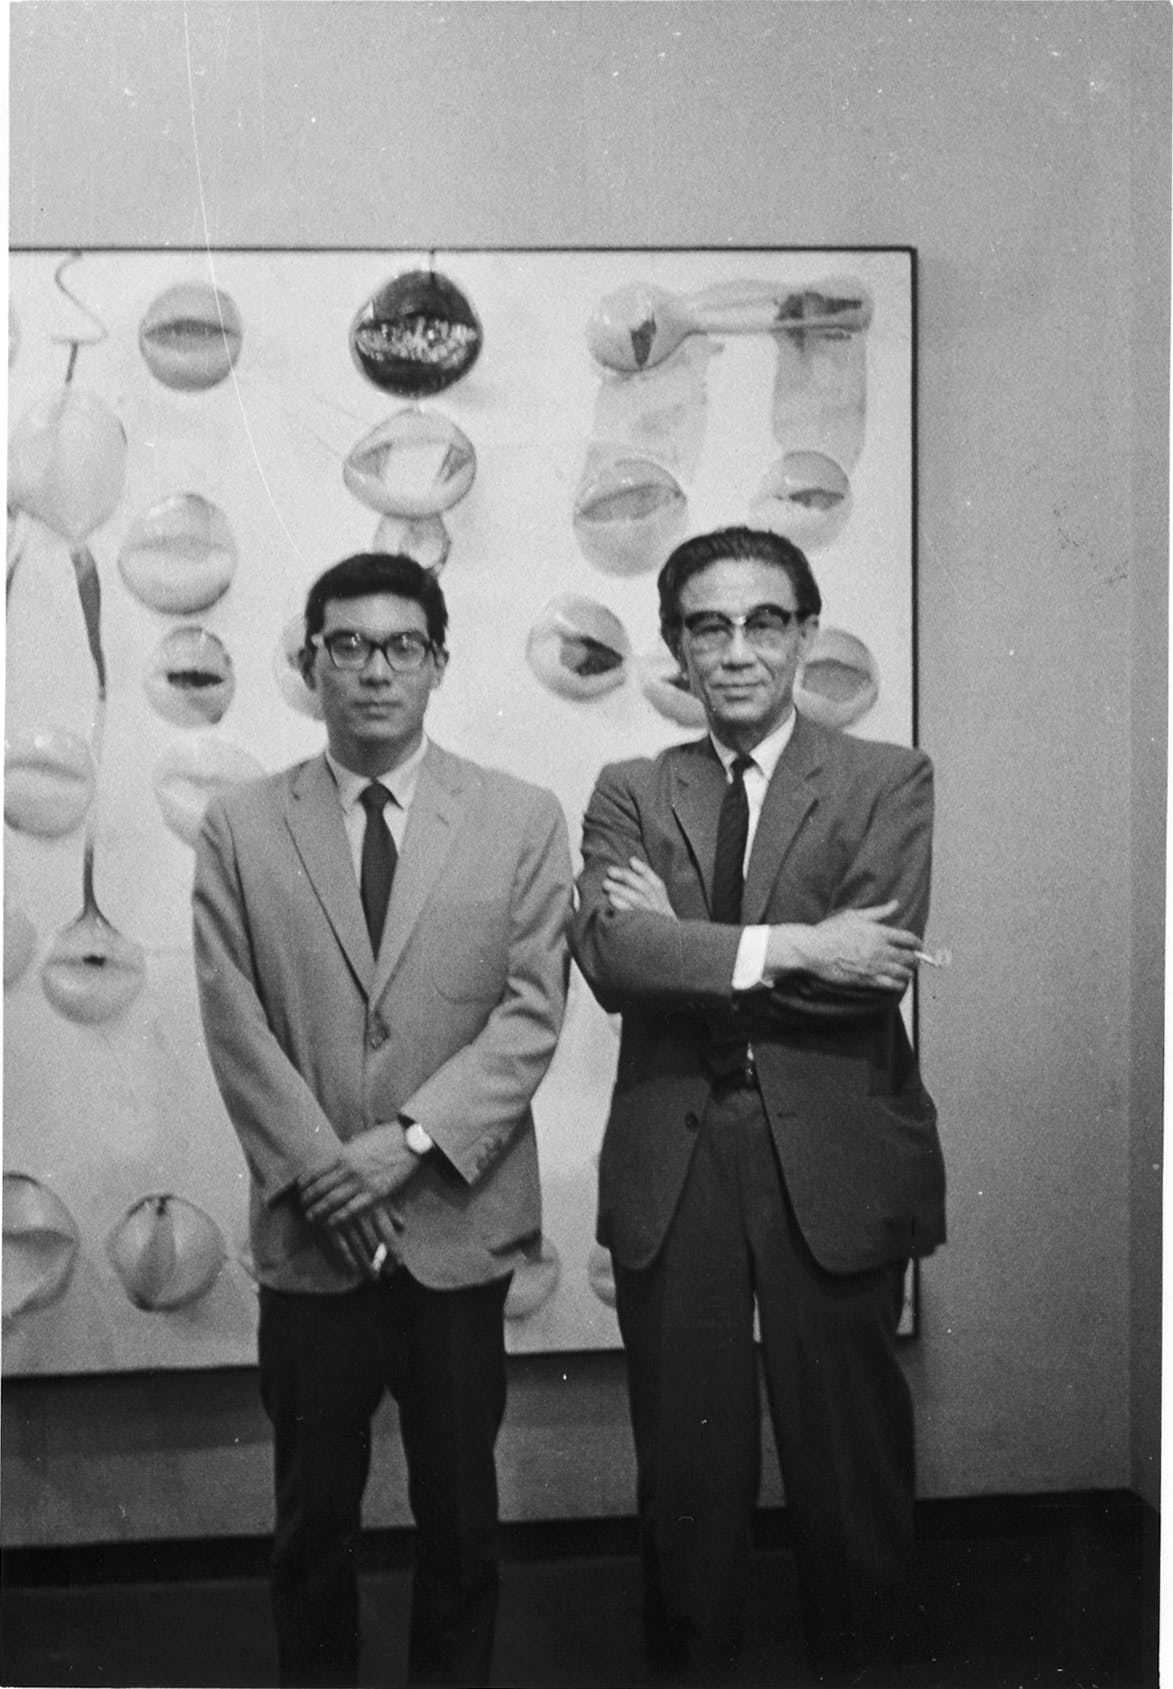 Takesada Matsutani (left) and Jiro Yoshihara (right) at Matsutani's 1963 solo exhibition at the Gutai Pinacoteca, Osaka.